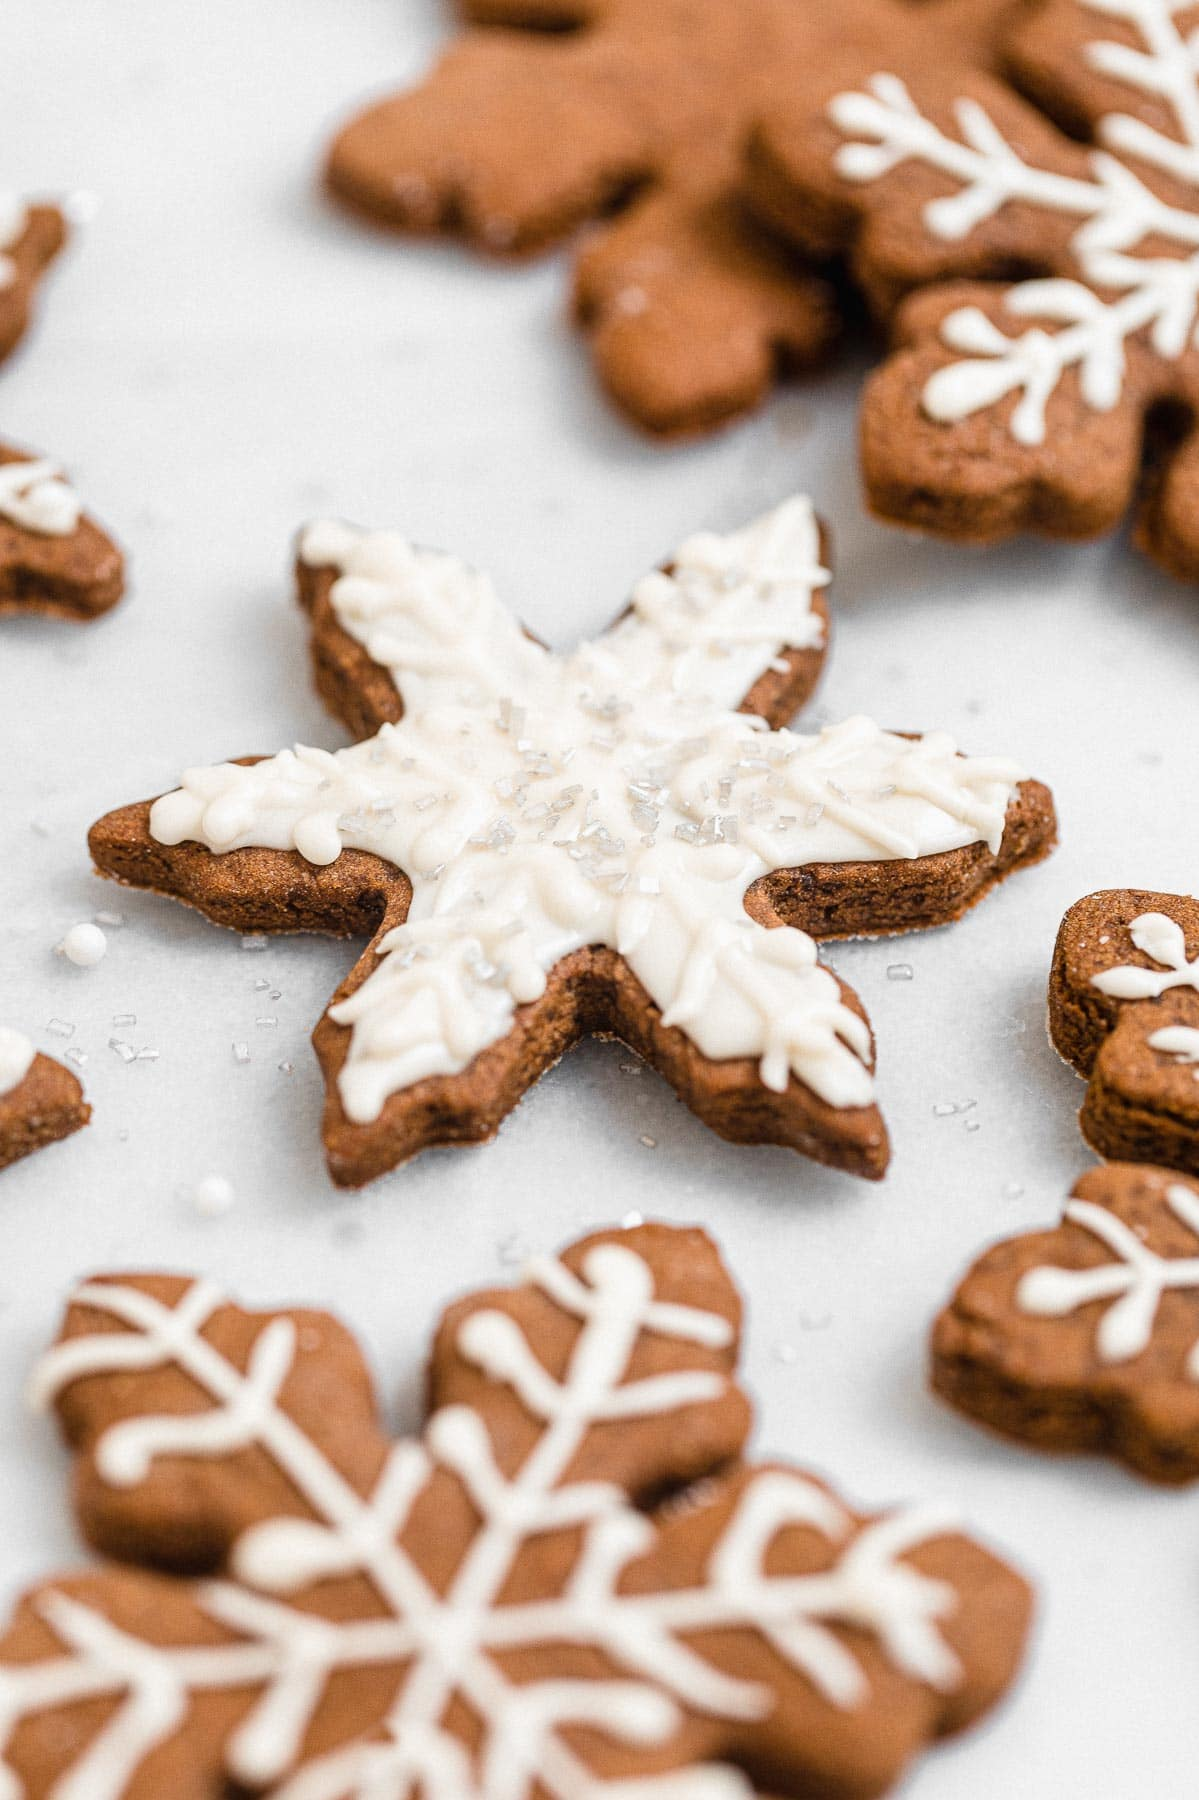 Vegan and gluten free snowflake gingerbread cookie with icing.